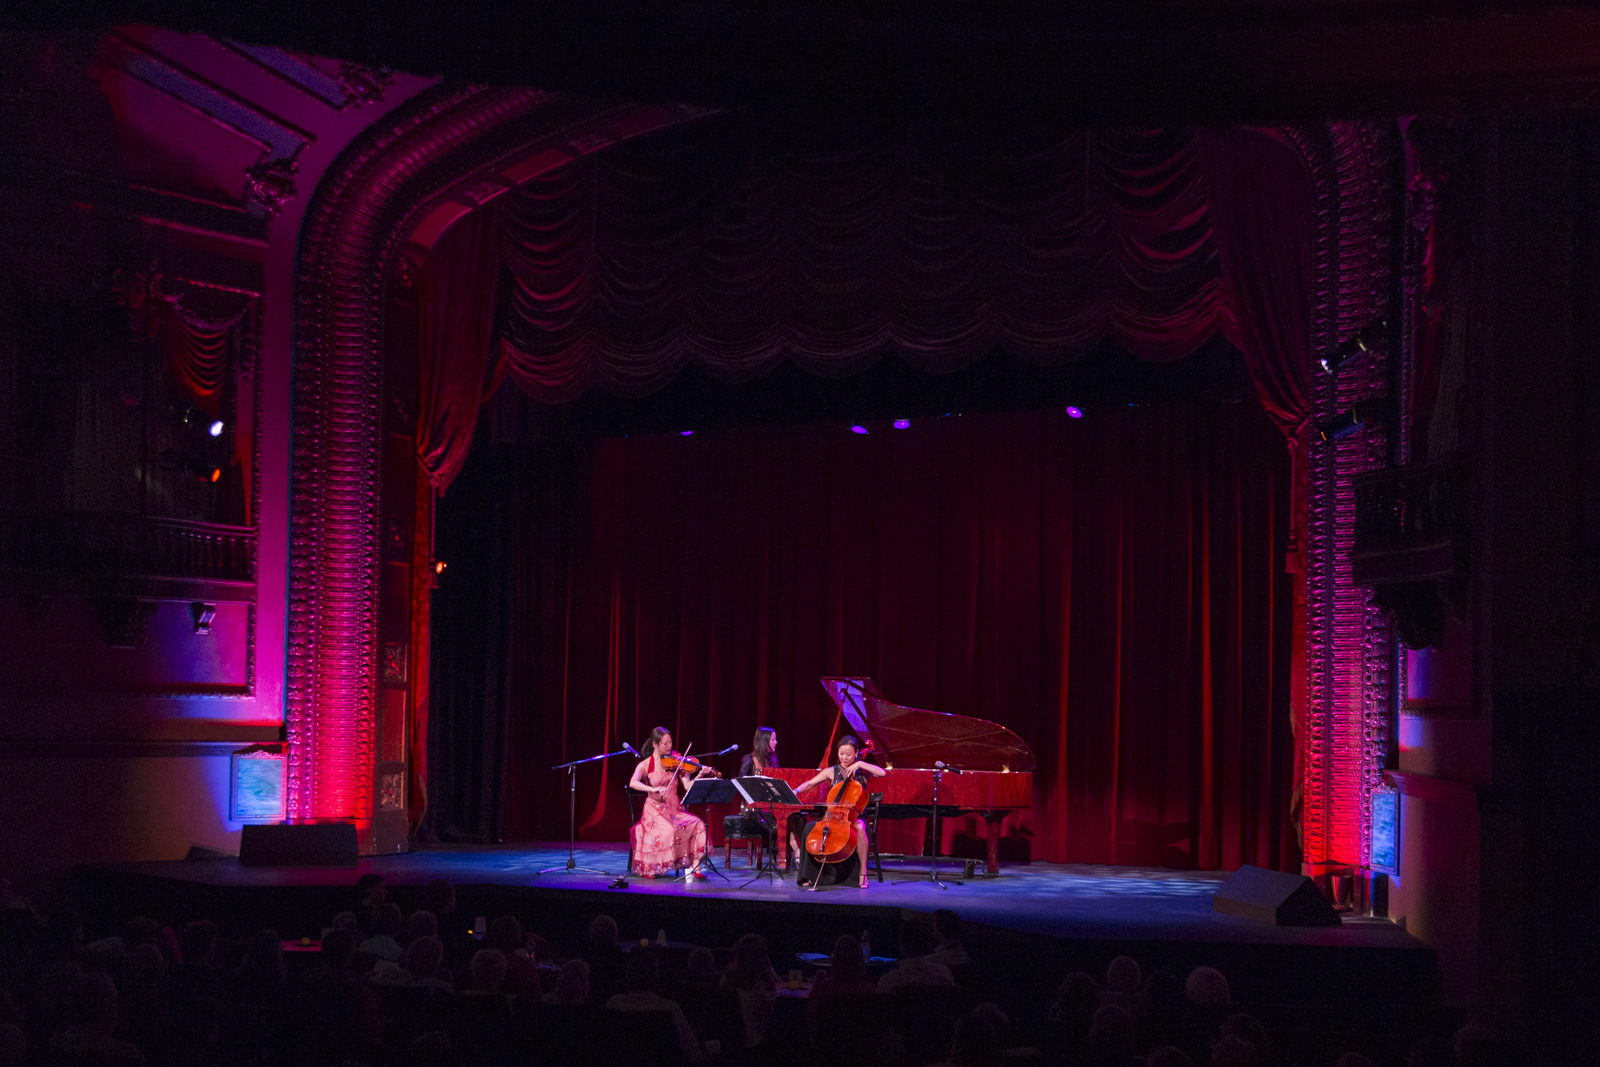 Ahn Trio's concert last week at the Ellen Theater in Bozeman, MT was so much fun! We will be back there in August!